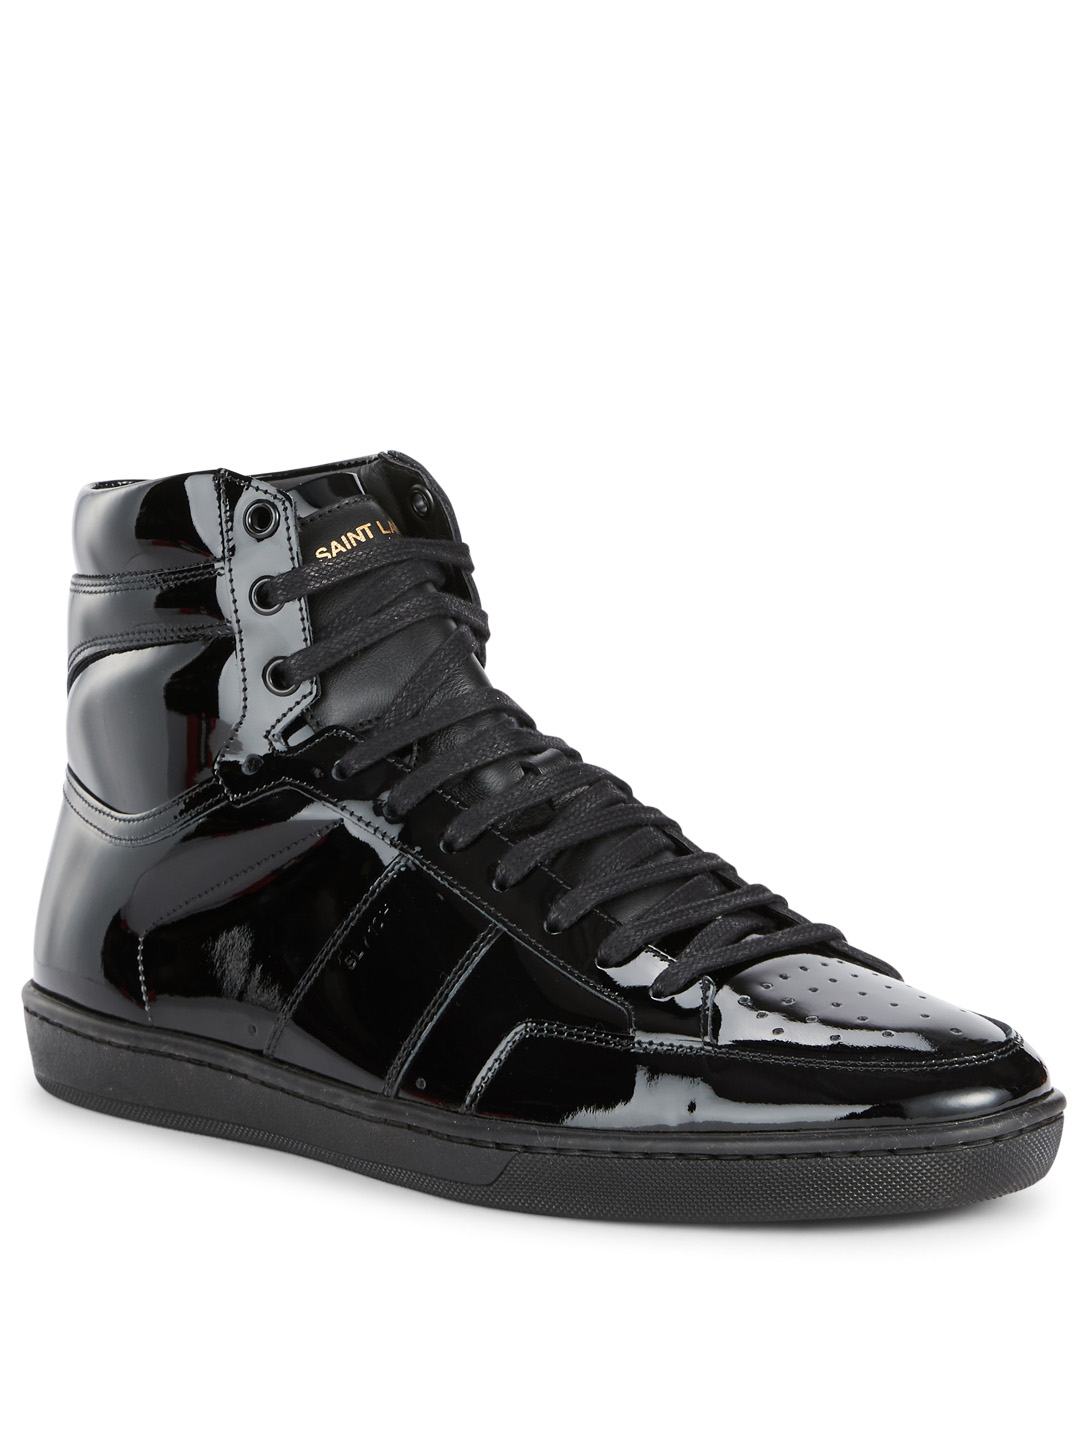 SAINT LAURENT Court Classic SL/10H  High-Top Patent Leather Sneakers Men's Black